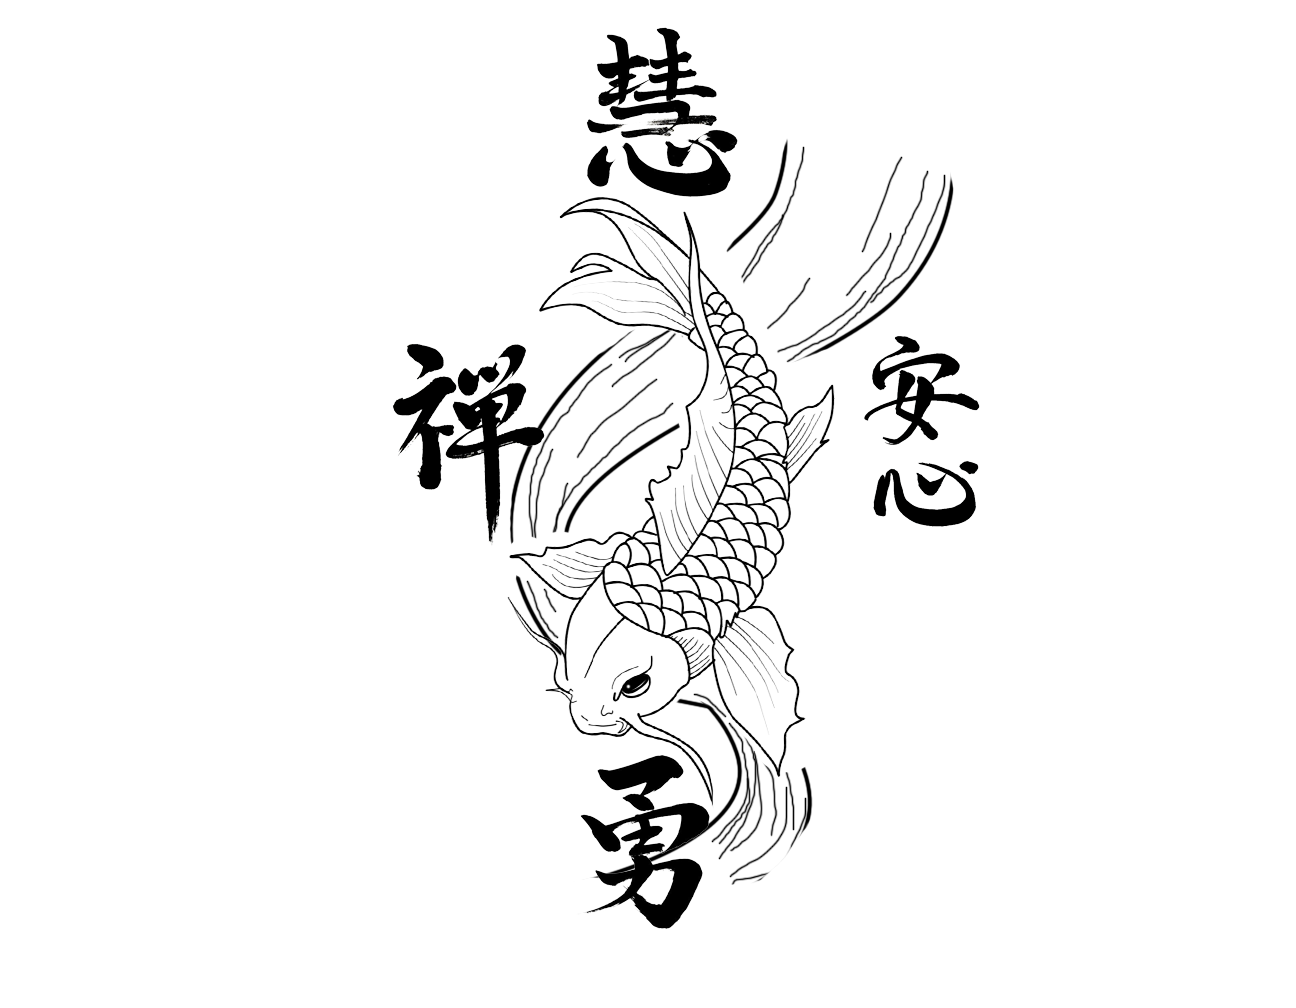 Zodiac tattoo designs there is only here koi fish tattoo for Coy fish designs